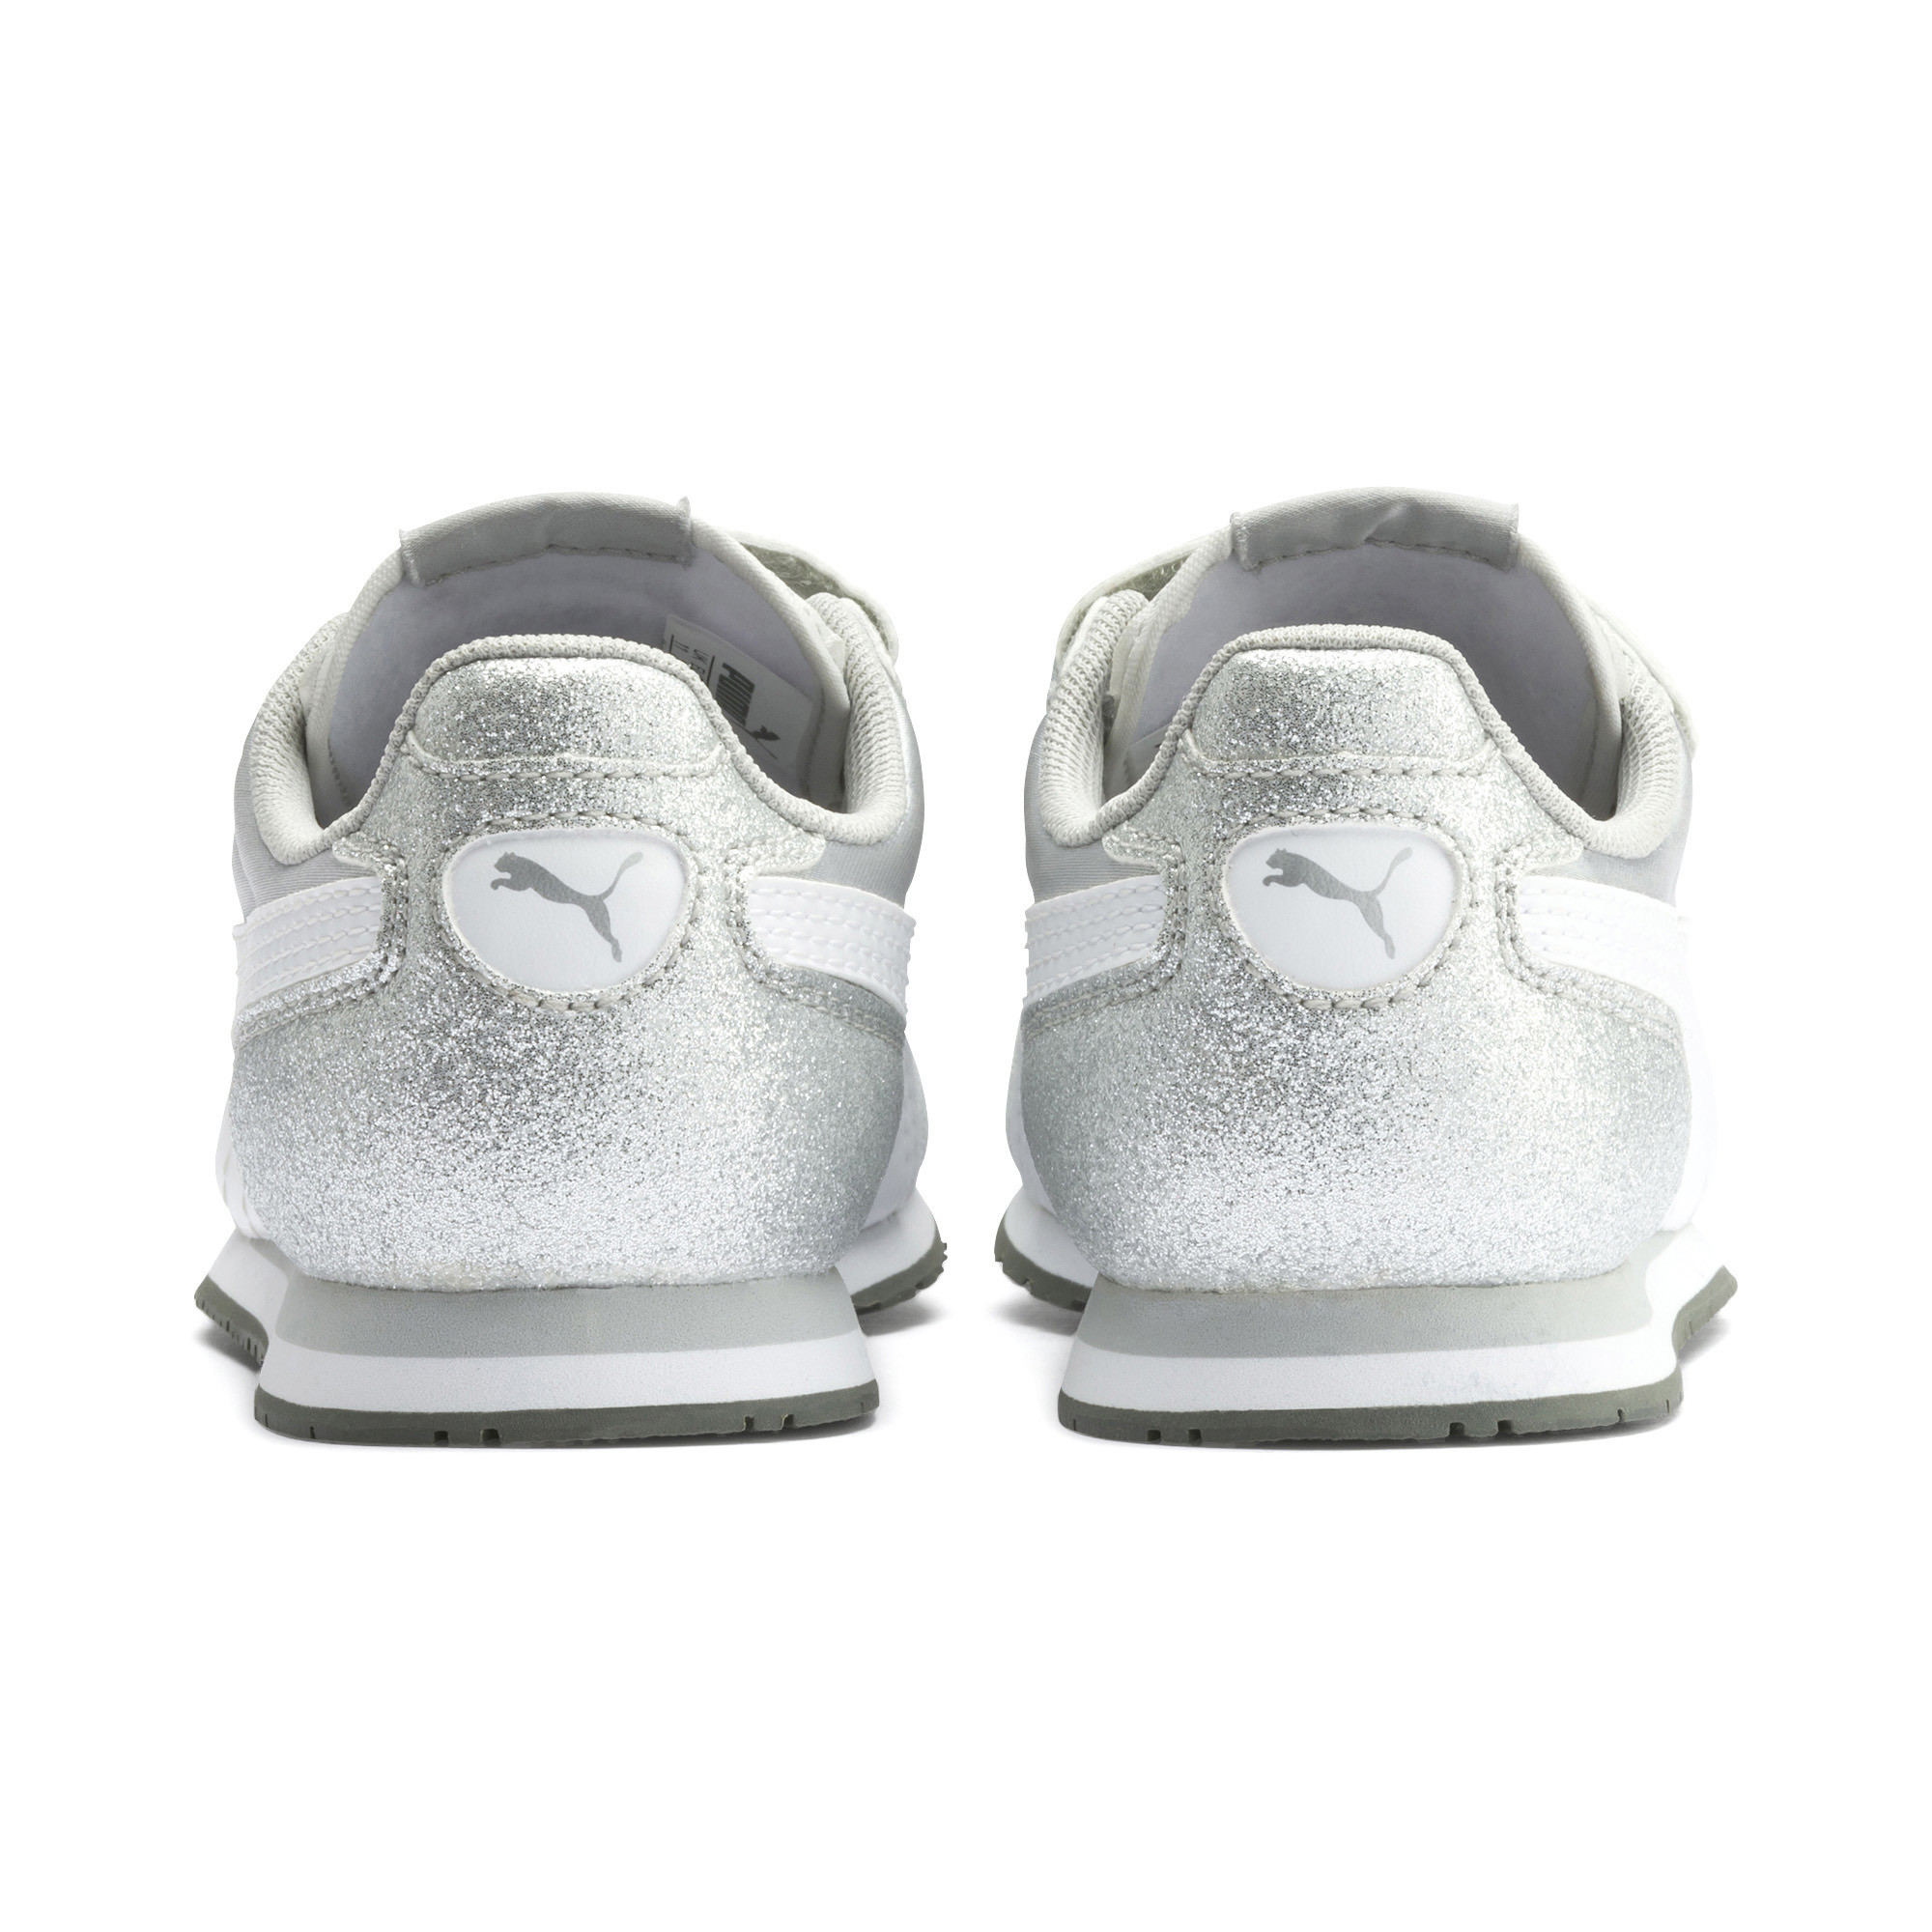 PUMA-Cabana-Racer-Glitz-AC-Shoes-PS-Girls-Shoe-Kids thumbnail 9